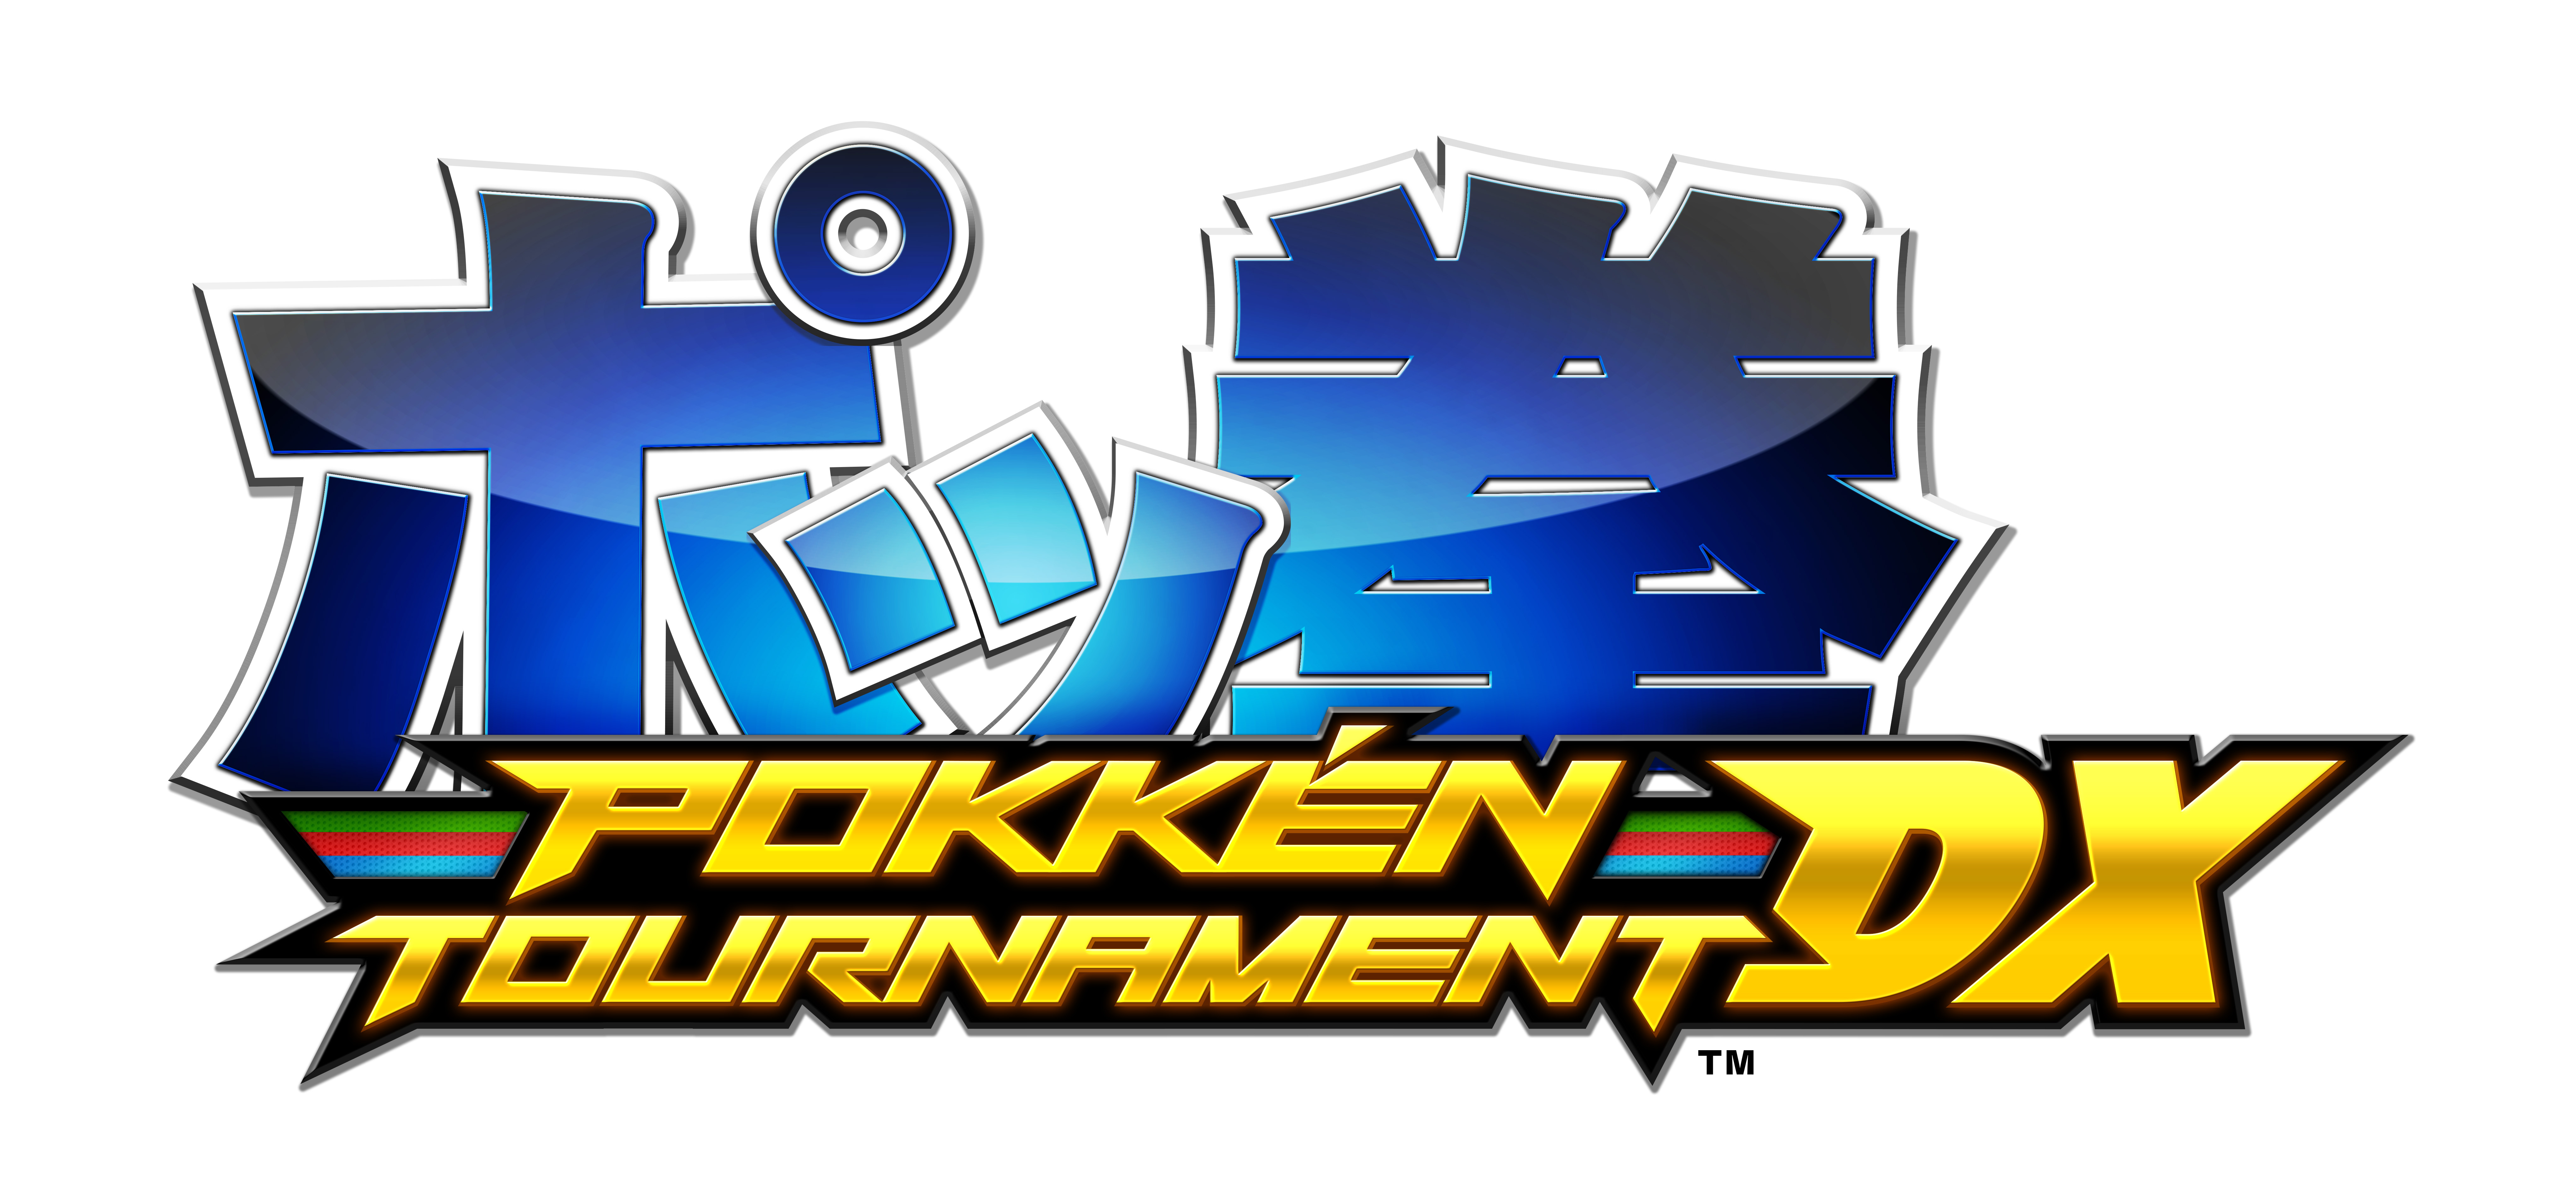 Pokken Tournament DX : Le premier jeu Pokémon pour la Nintendo Switch